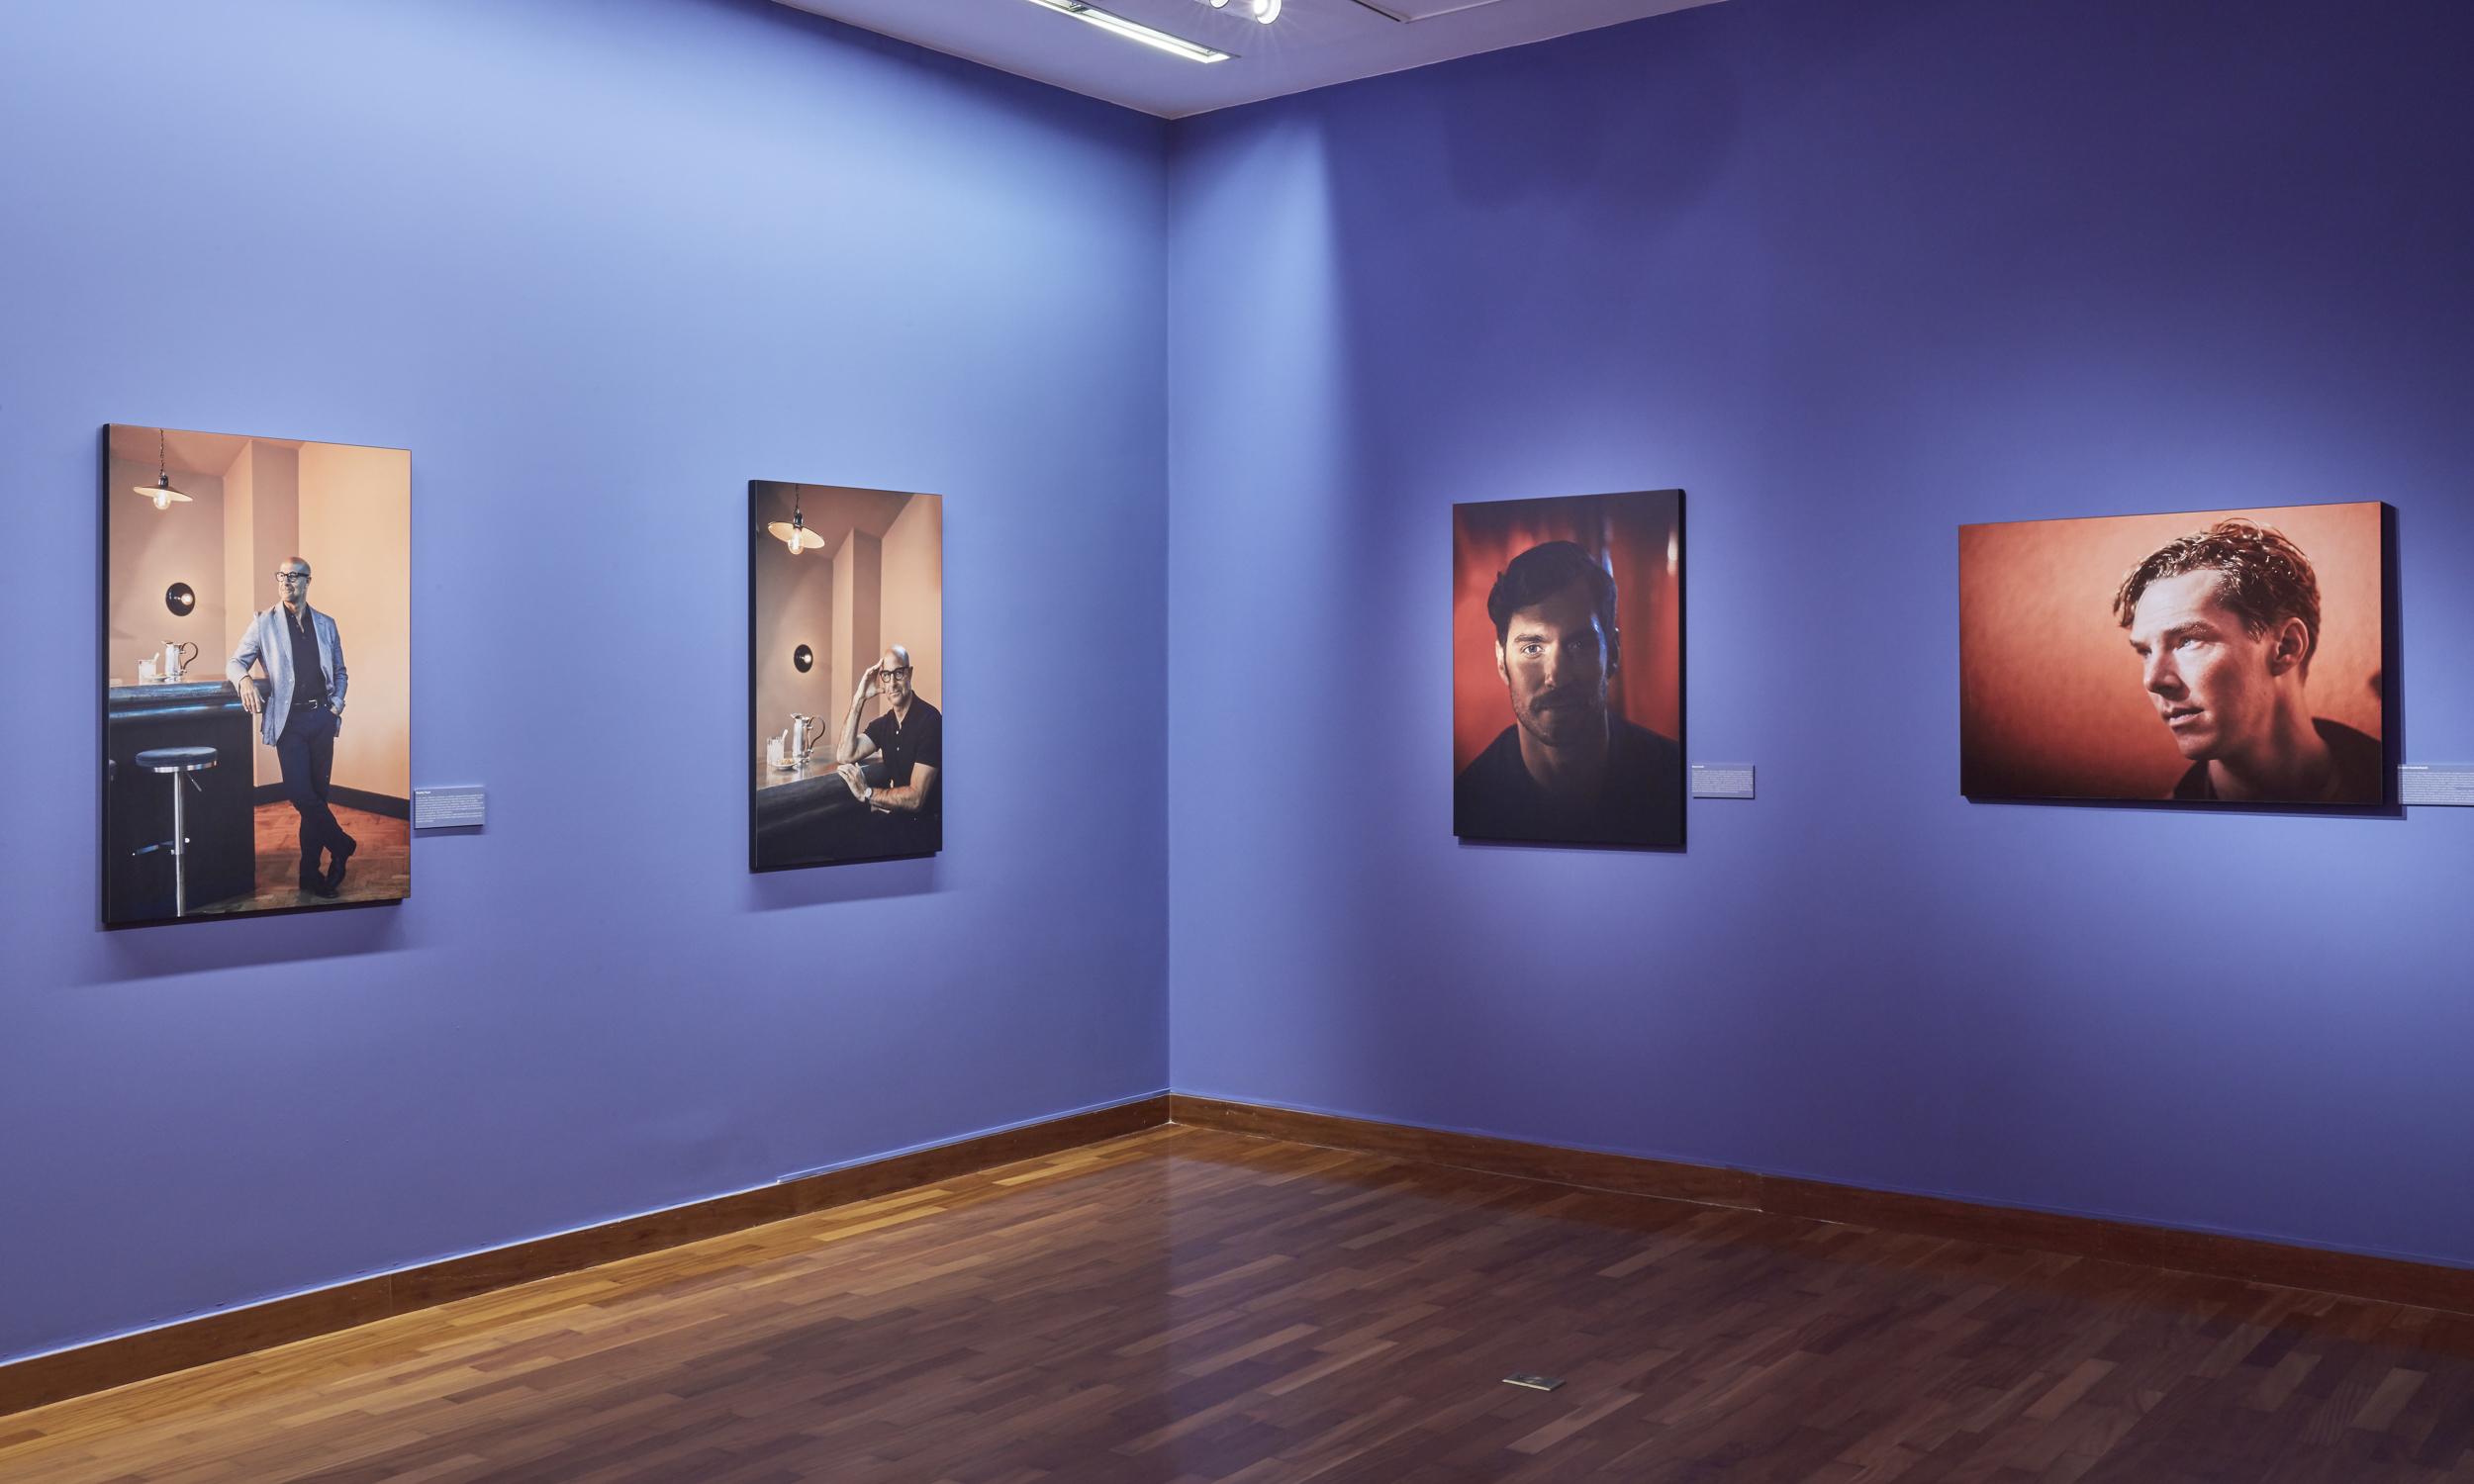 exhibiton in peru for yorkshire based fine art and celebrity photographer matthew lloyd 0023.JPG